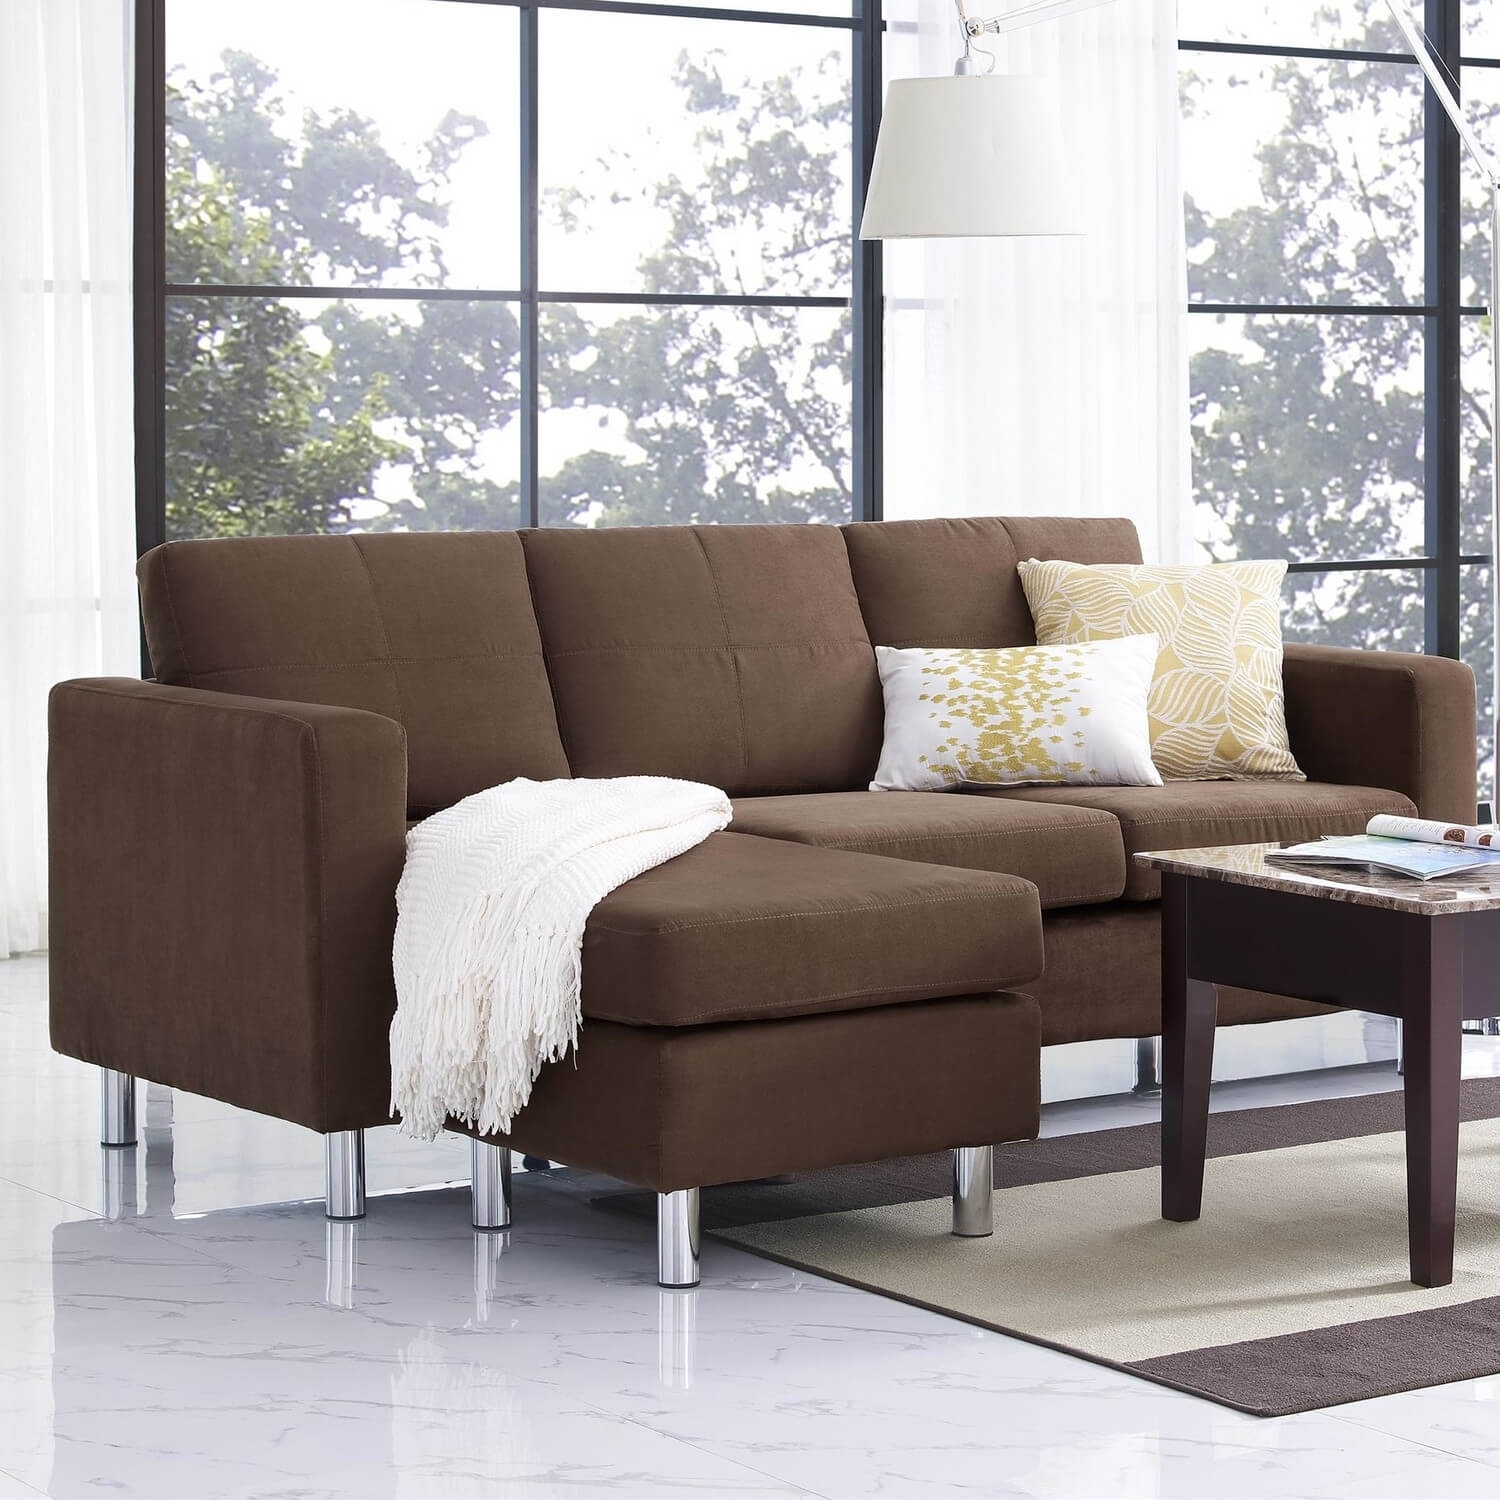 sectional sofas under 1000 00 leather recliner and chairs 10 top 1500 sofa ideas